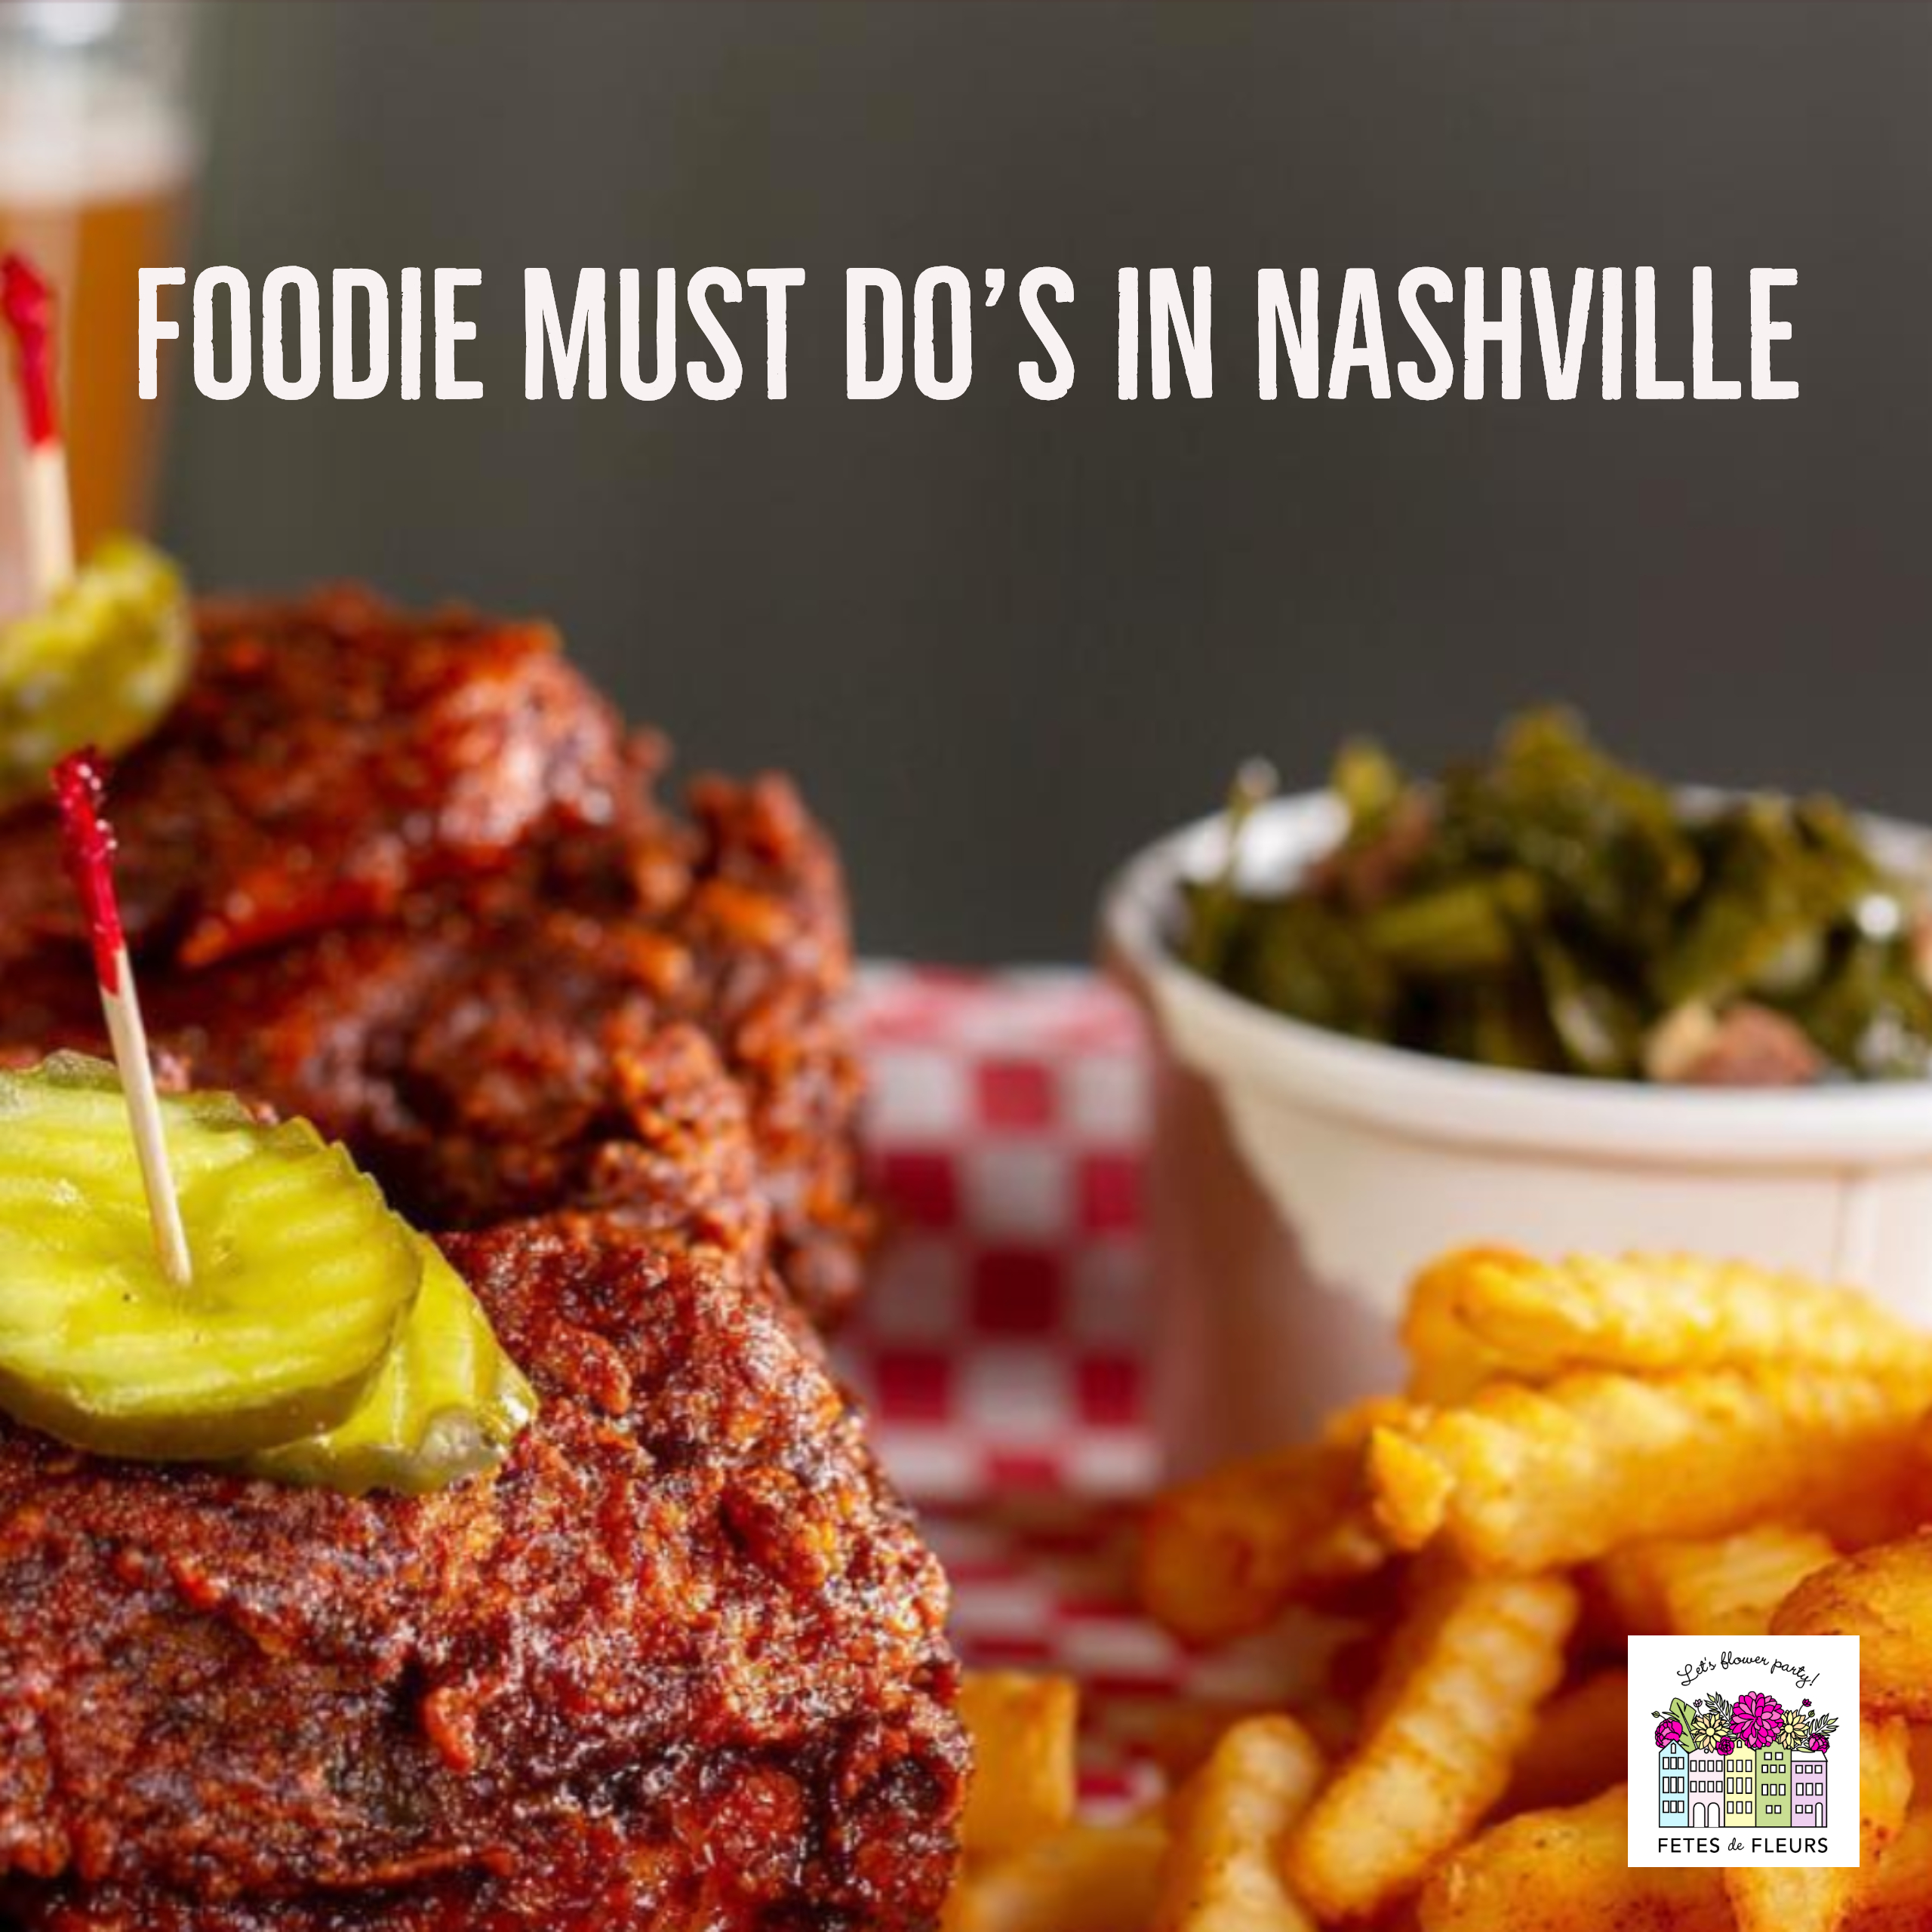 top foodie places in nashville for your girls weekend or bachelorette party